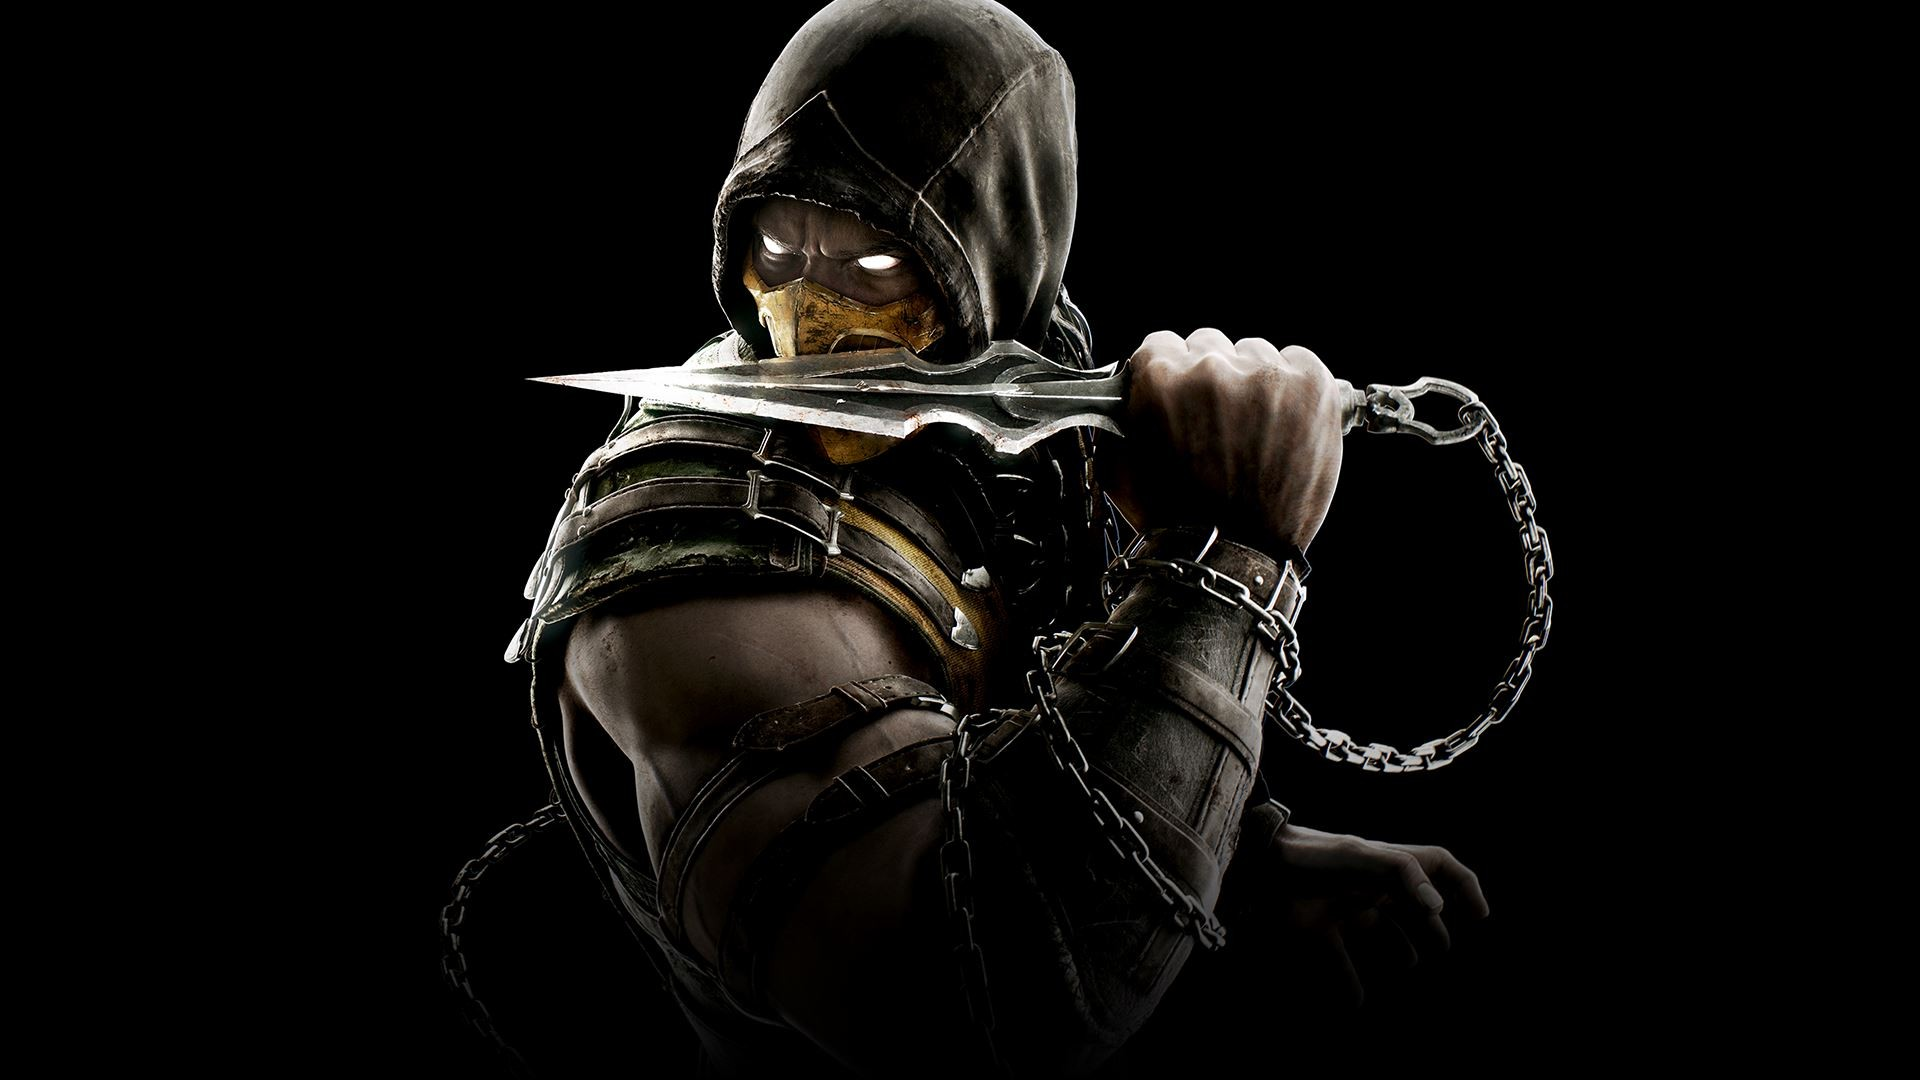 scorpion mortal kombat, hd games, 4k wallpapers, images, backgrounds